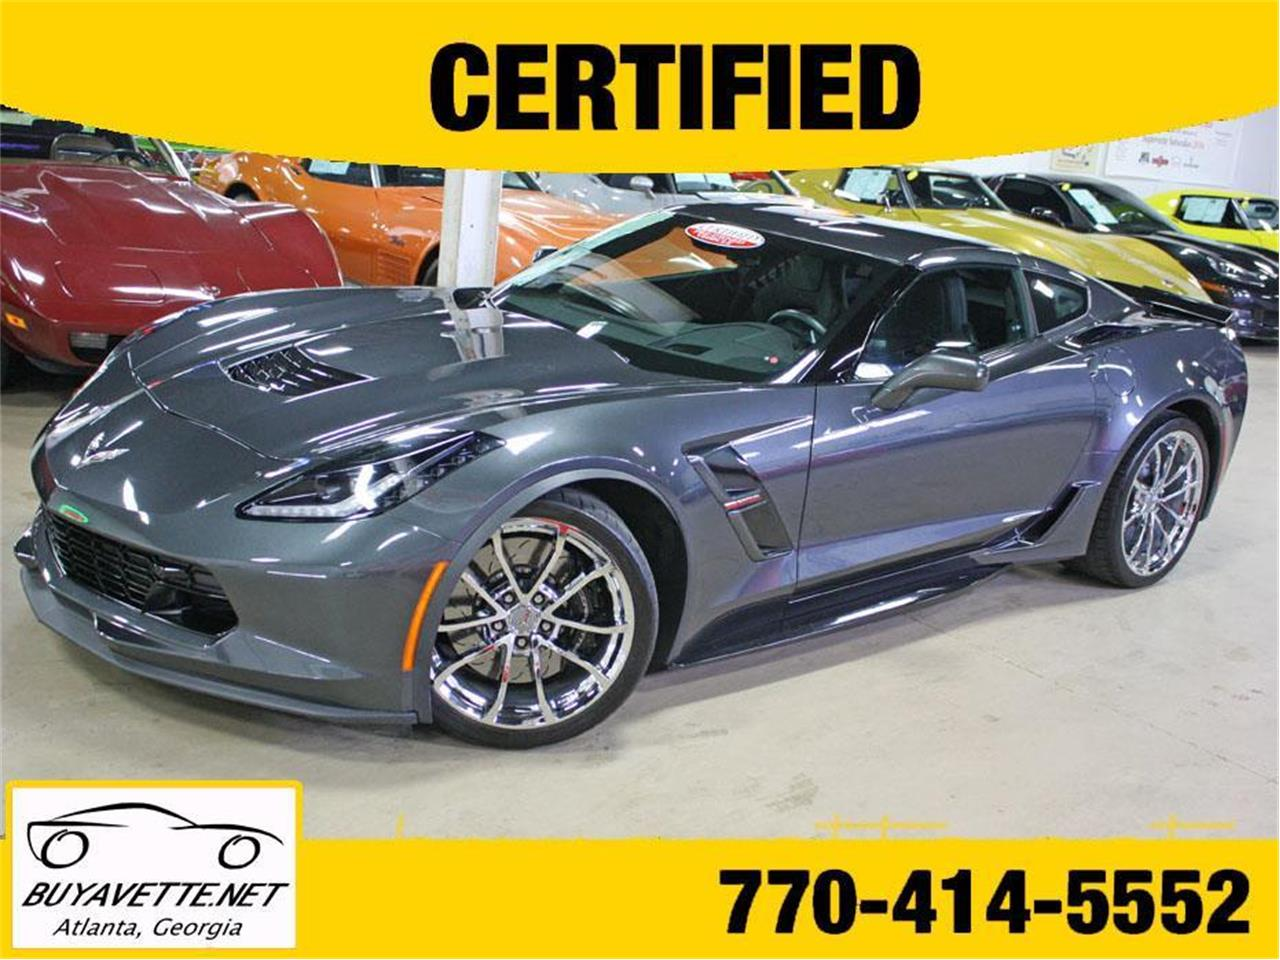 For Sale 2017 Chevrolet Corvette In Atlanta Georgia